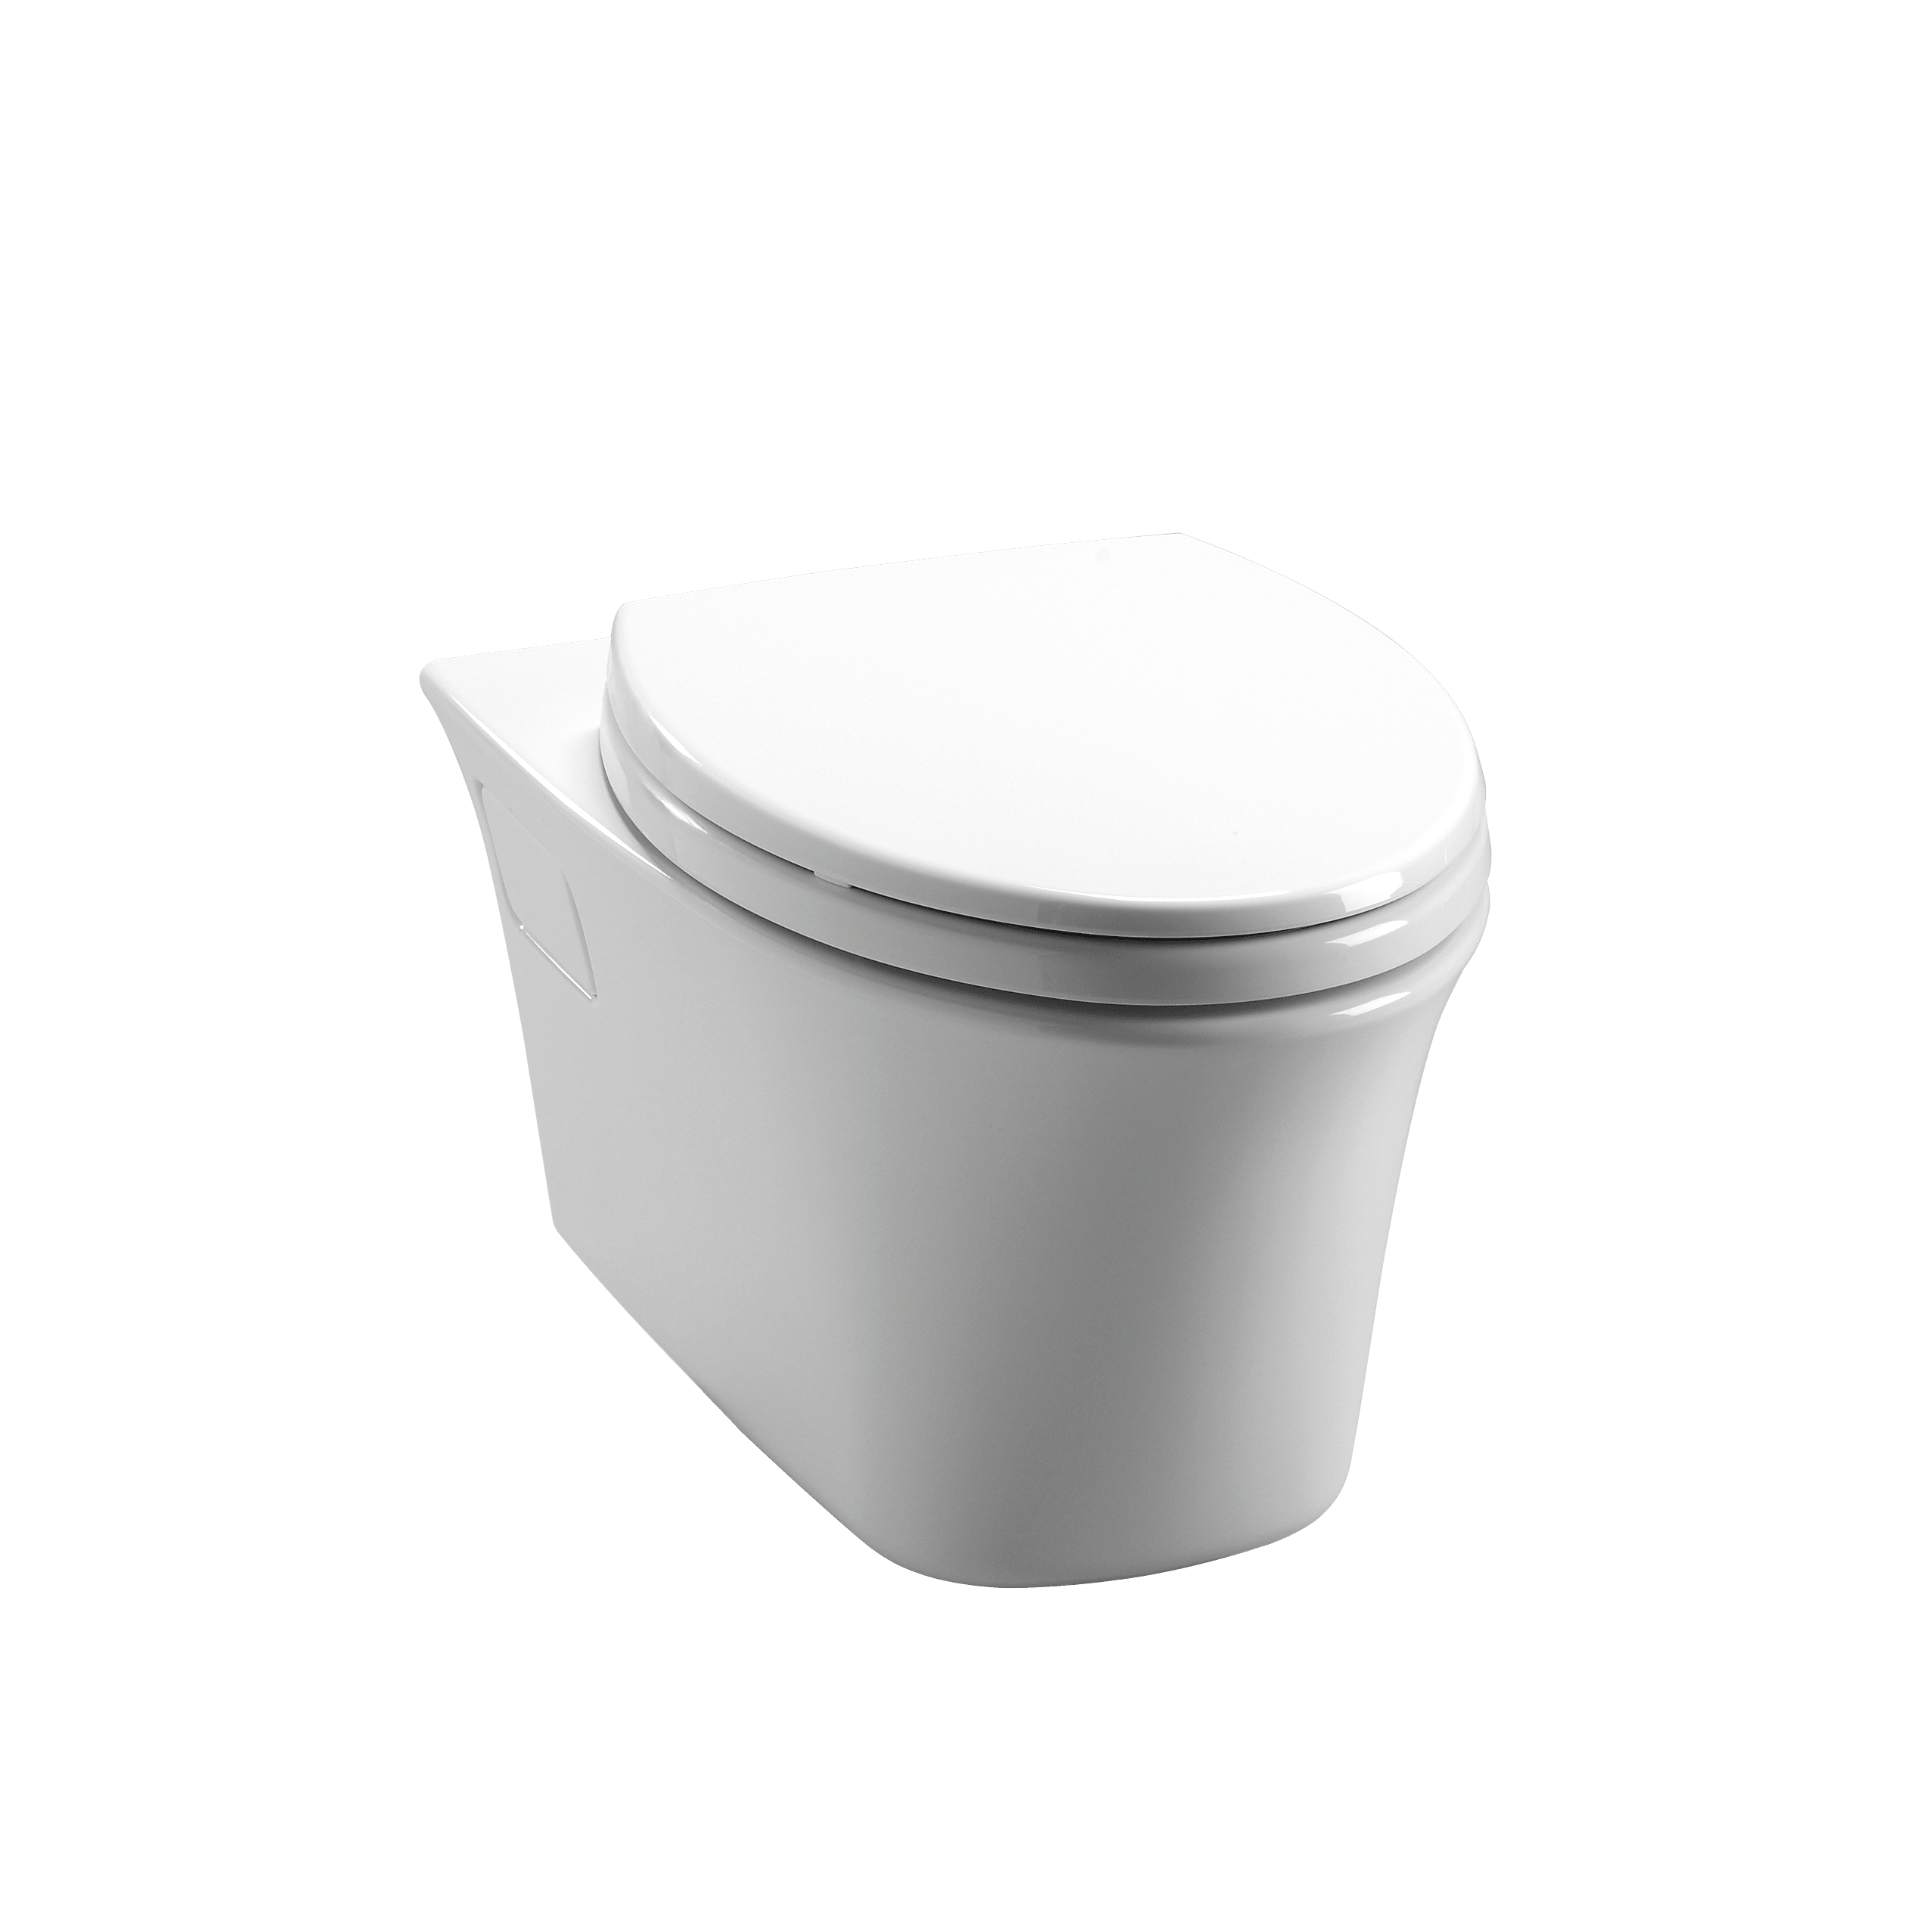 Toto CWT486MFG Maris Wall-hung Toilet And Duofit In-wall Tank System ...